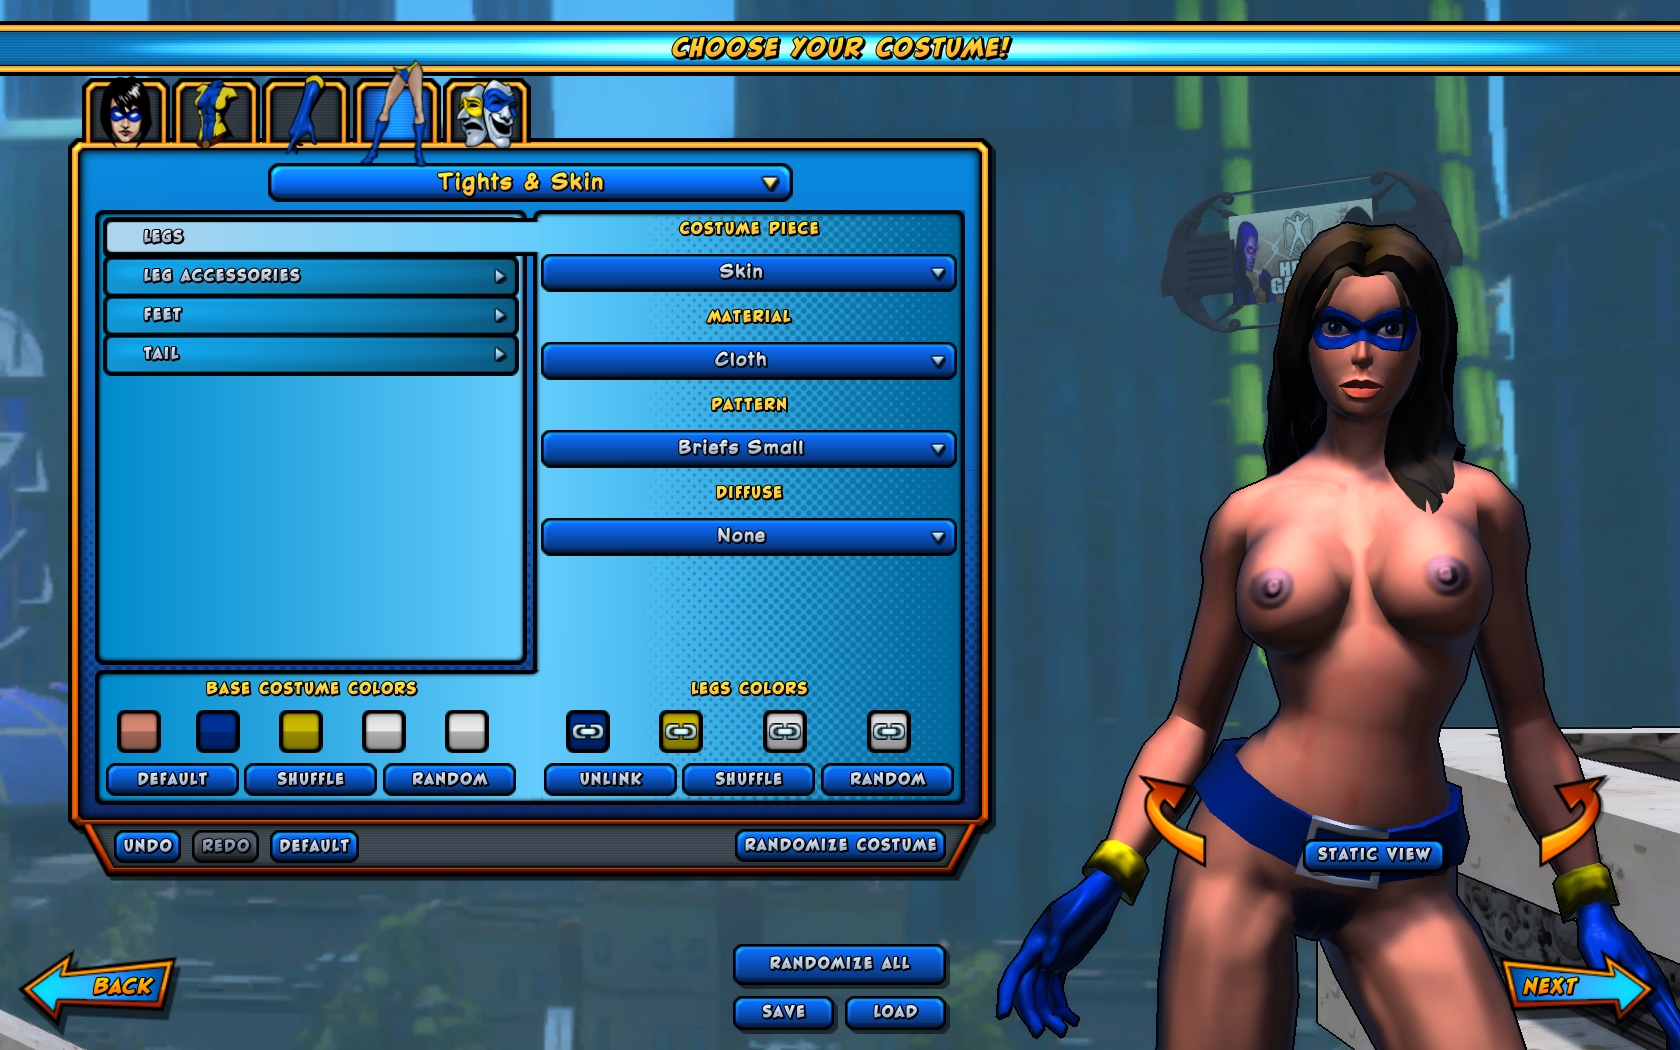 Champions nude mod xxx pictures